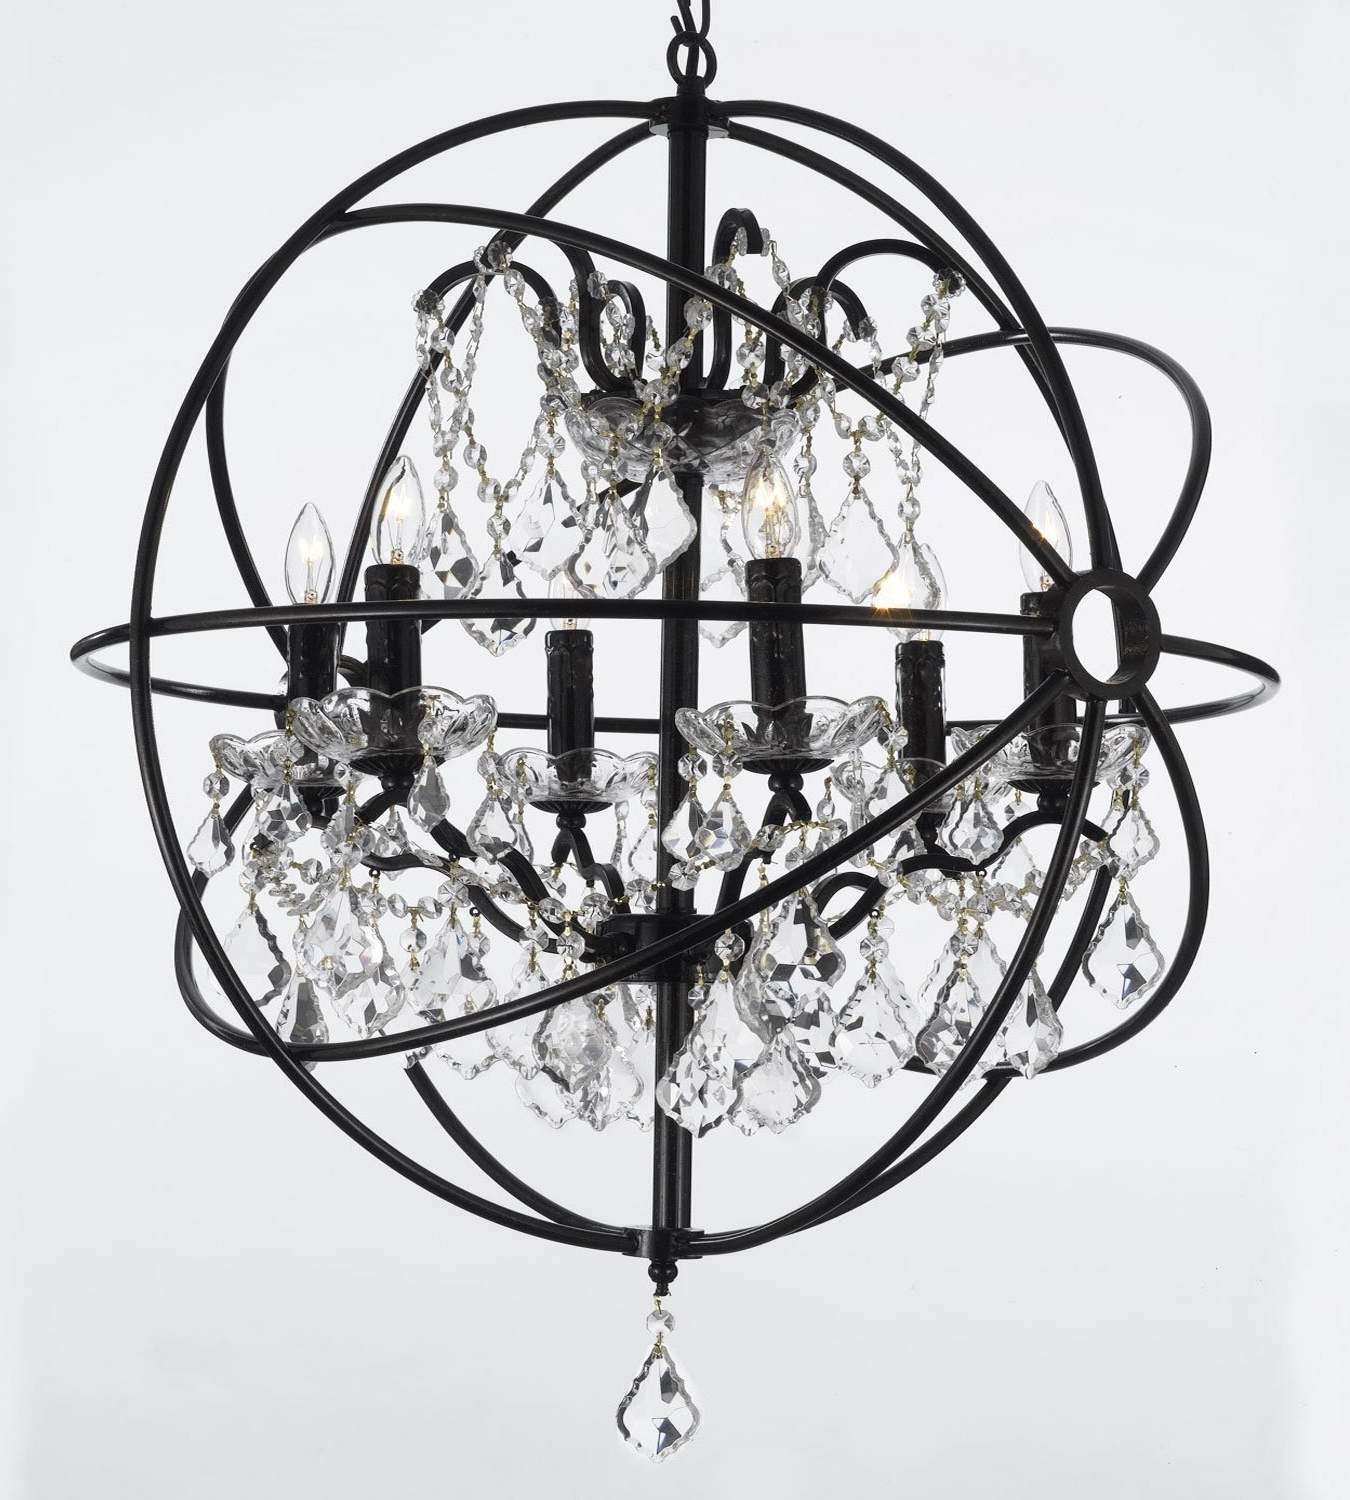 Best And Newest Foucault's Orb Wrought Iron Crystal Chandelier Lighting Country Pertaining To Wrought Iron Chandelier (View 2 of 15)